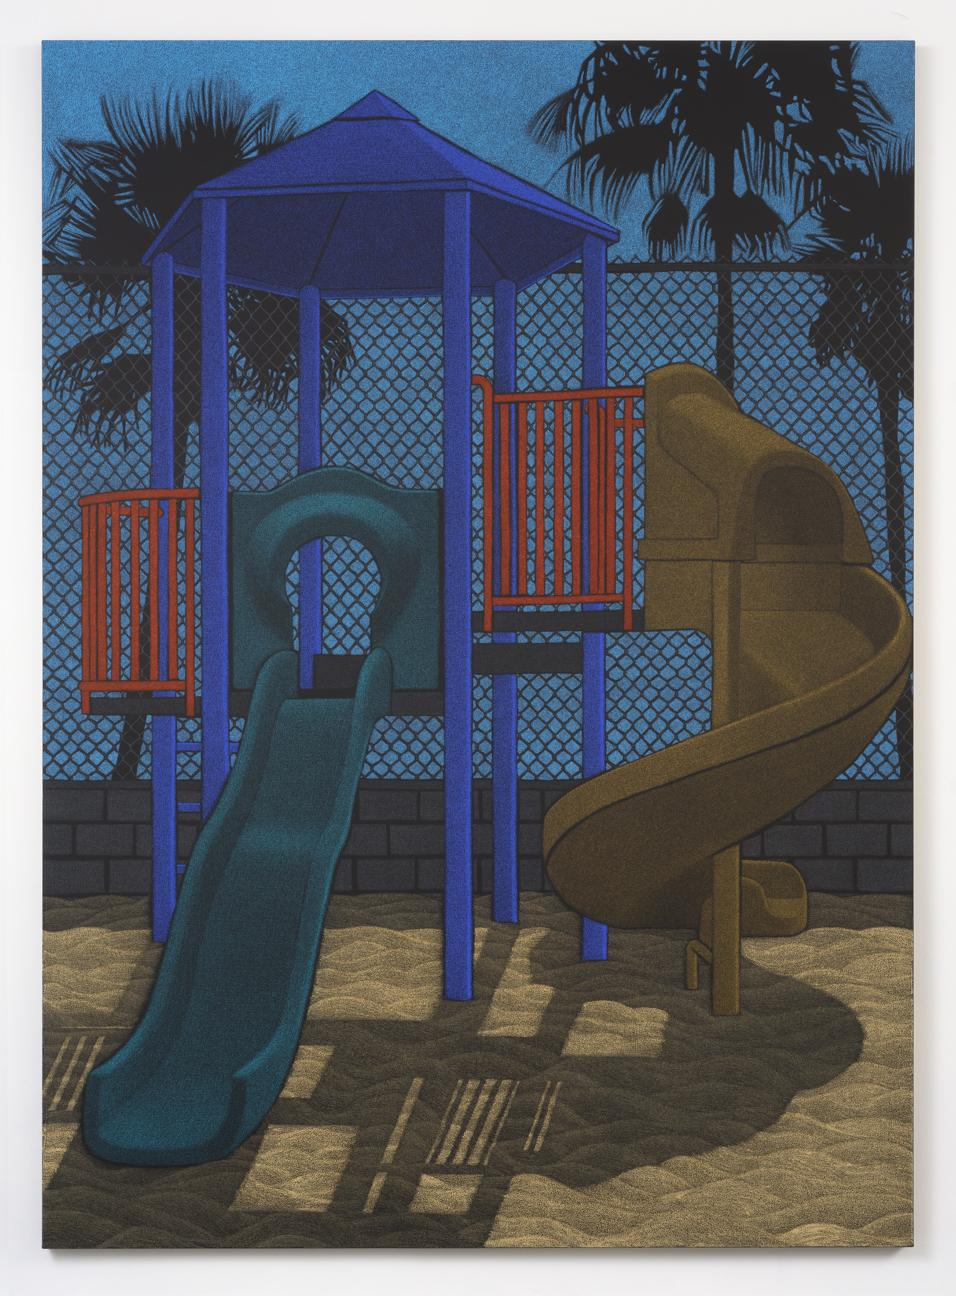 Adler_Location_Playground_5_2014_website5